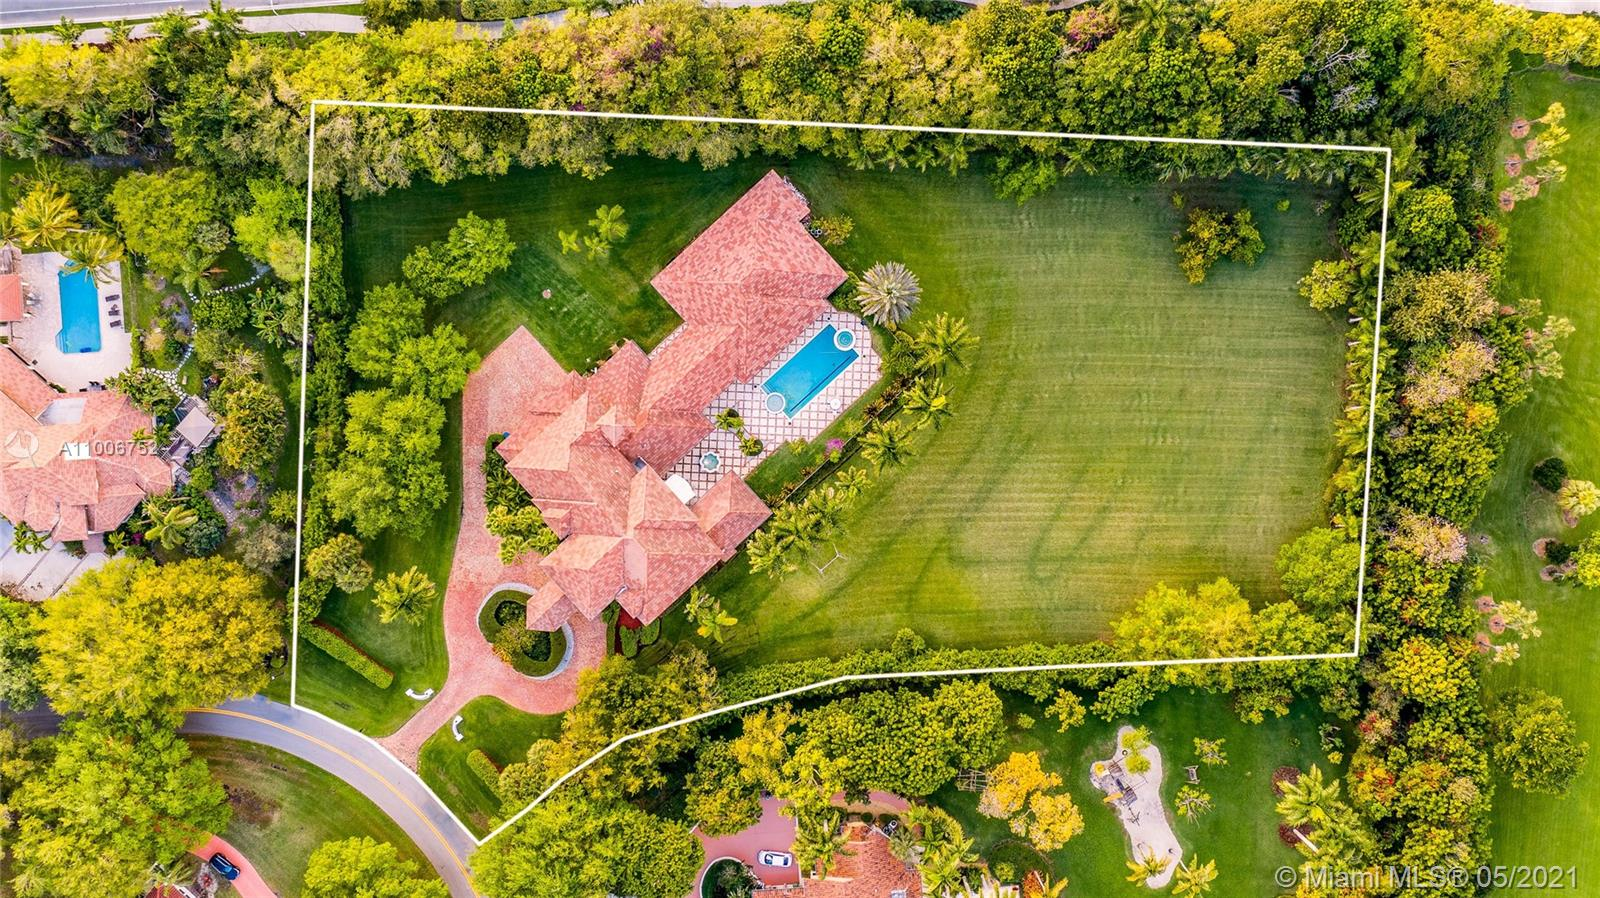 La Estancia - a signature estate on 3.6 ACRES in prestigious Windmill Ranch Estates! An opportunity like this is rare. Features a connected guest house with full kitchen, theatre, game room, gym and in-law quarter all on 1st level. Enveloped in privacy, fenced and offers your own sports field with huge grassy area. There is no need to leave home when you have such wonderful space and amenities!  Big swimming pool with in-pool spa.  Timeless elegance affords you to move right in or update to your desired tastes. Floor plan and dimensions are as you would design a new house today. Expansive kitchen opens to family room and covered poolside patio with summer kitchen. Wet bar in living room makes you want to linger with family and friends. Stunning porte cocher entry and Chicago brick driveway